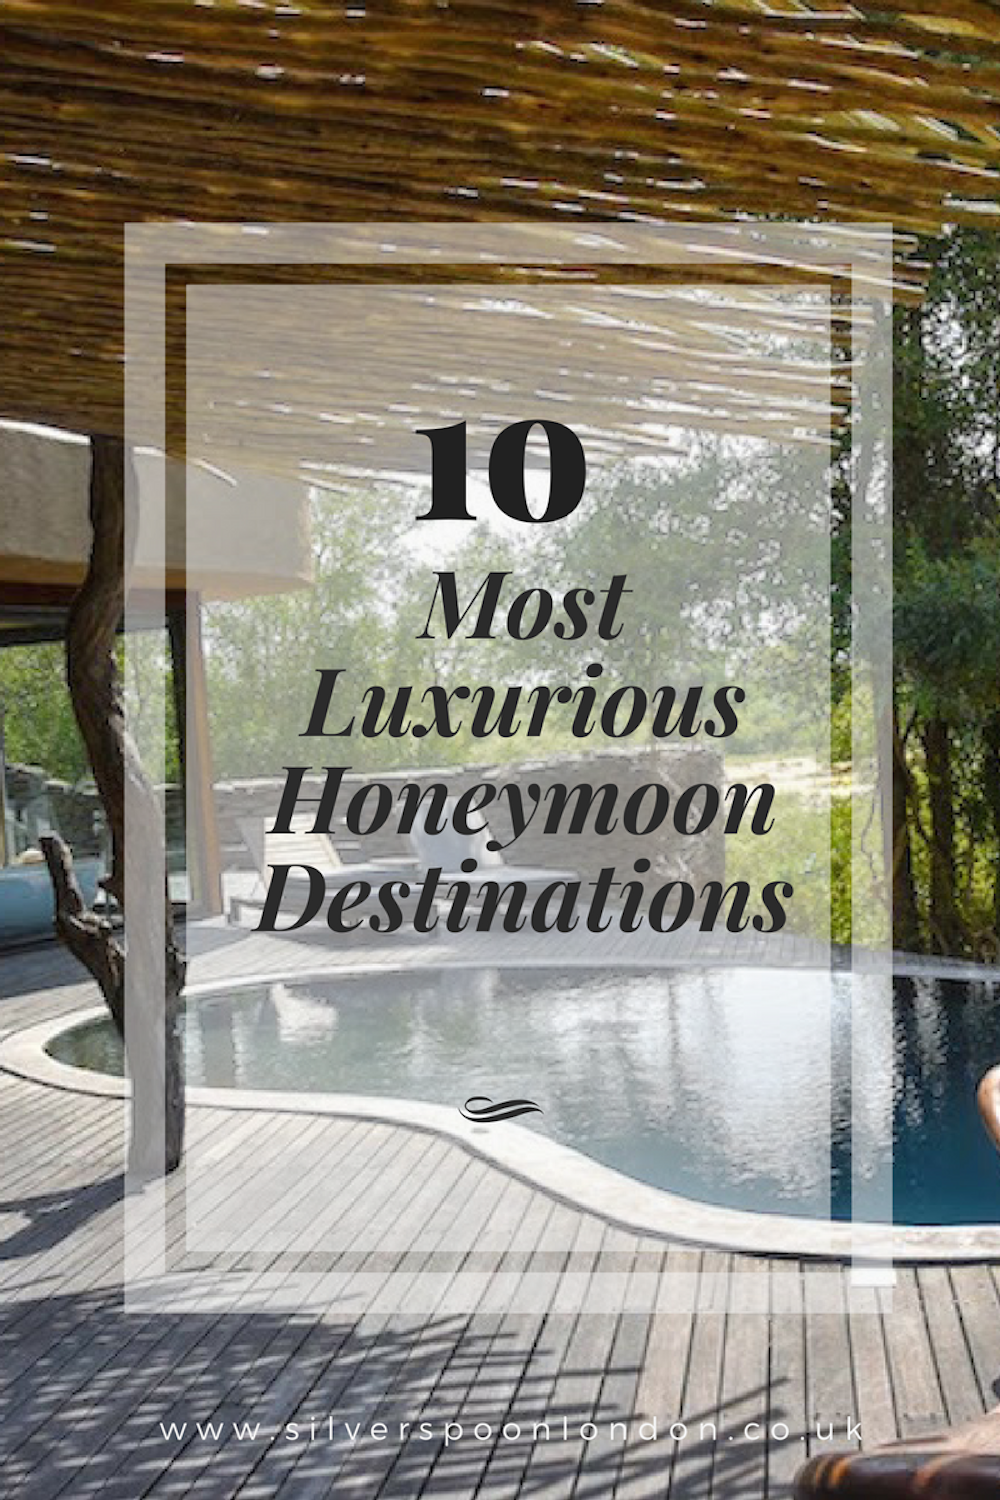 10 Most Luxurious Honeymoon Destinations